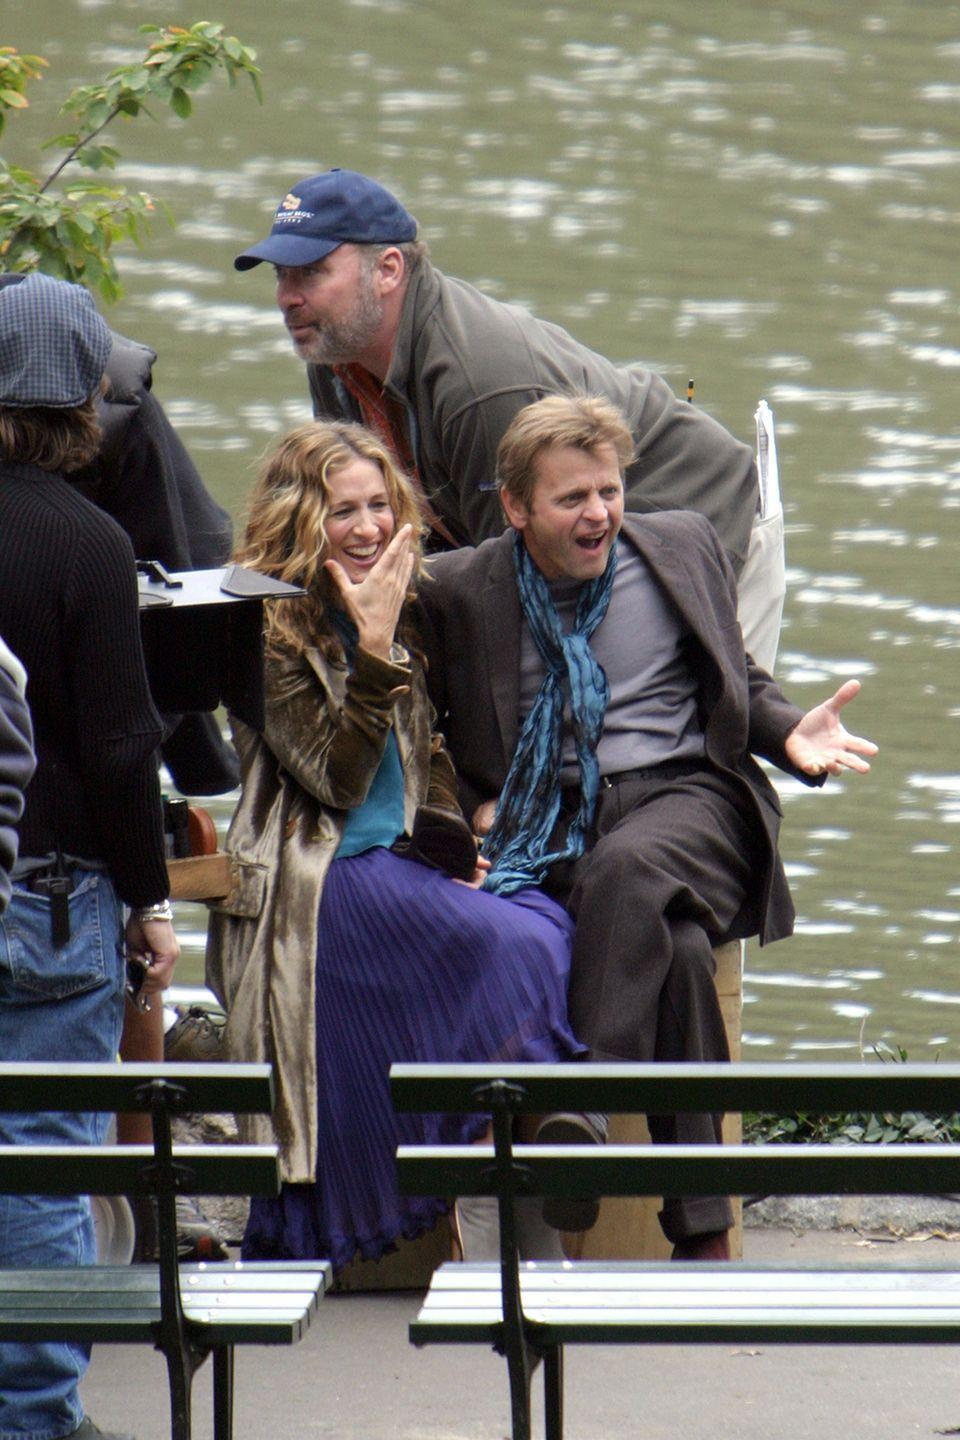 "<p>SJP played a large role in bringing Mikhail Baryshnikov on the show. Despite criticisms from viewers, Parker defended her choice for her cultured love interest: ""[Mikhail] is extraordinary, and this character is not like anyone we've ever had on the show before,"" she tells <a href=""http://www.tvguide.com/news/sarah-jessica-defends-41277/"" rel=""nofollow noopener"" target=""_blank"" data-ylk=""slk:TV Guide"" class=""link rapid-noclick-resp"">TV Guide</a> at the time. ""And this person has to bring with him culture and style and complication and depth and a brand new point of view about the city. And it is thrilling to think that there is this whole other city [out there] that Carrie doesn't know [about]."" </p>"